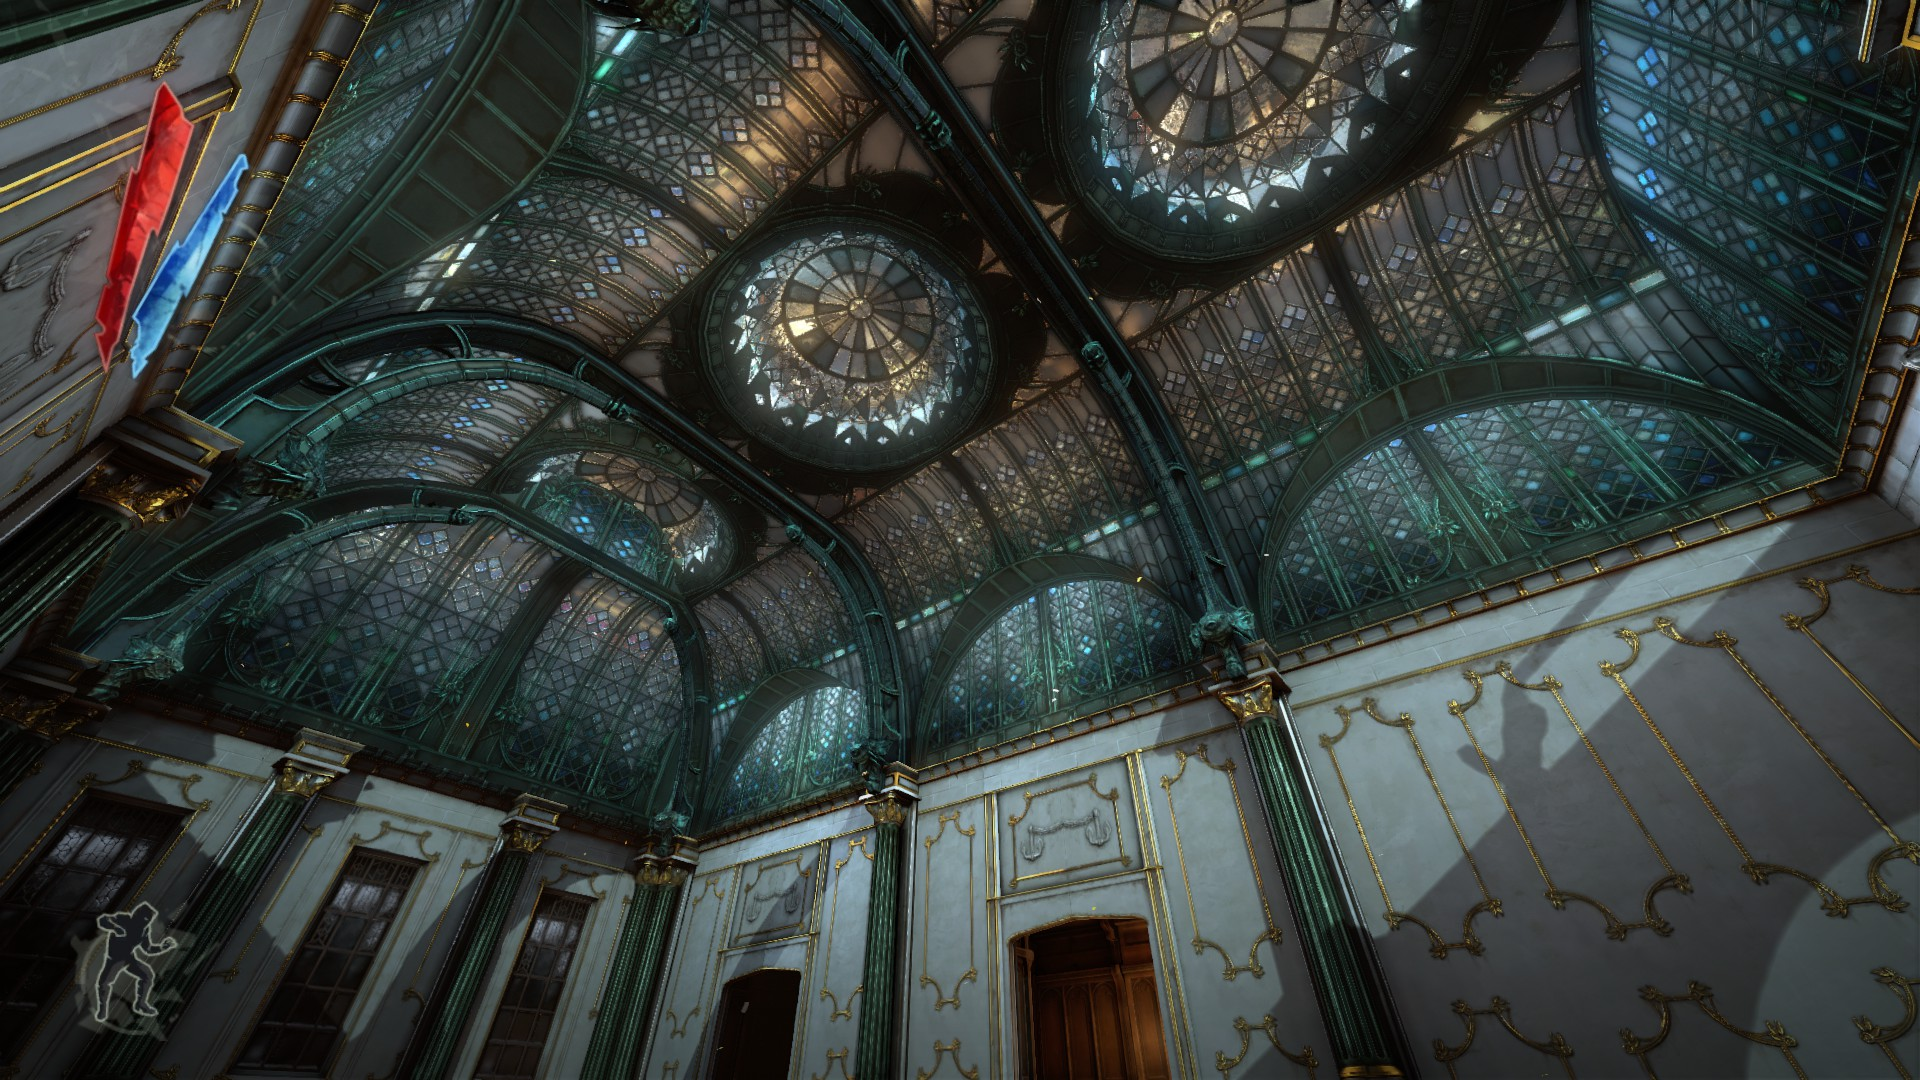 A fancy, stained glass dome roof in a big house.